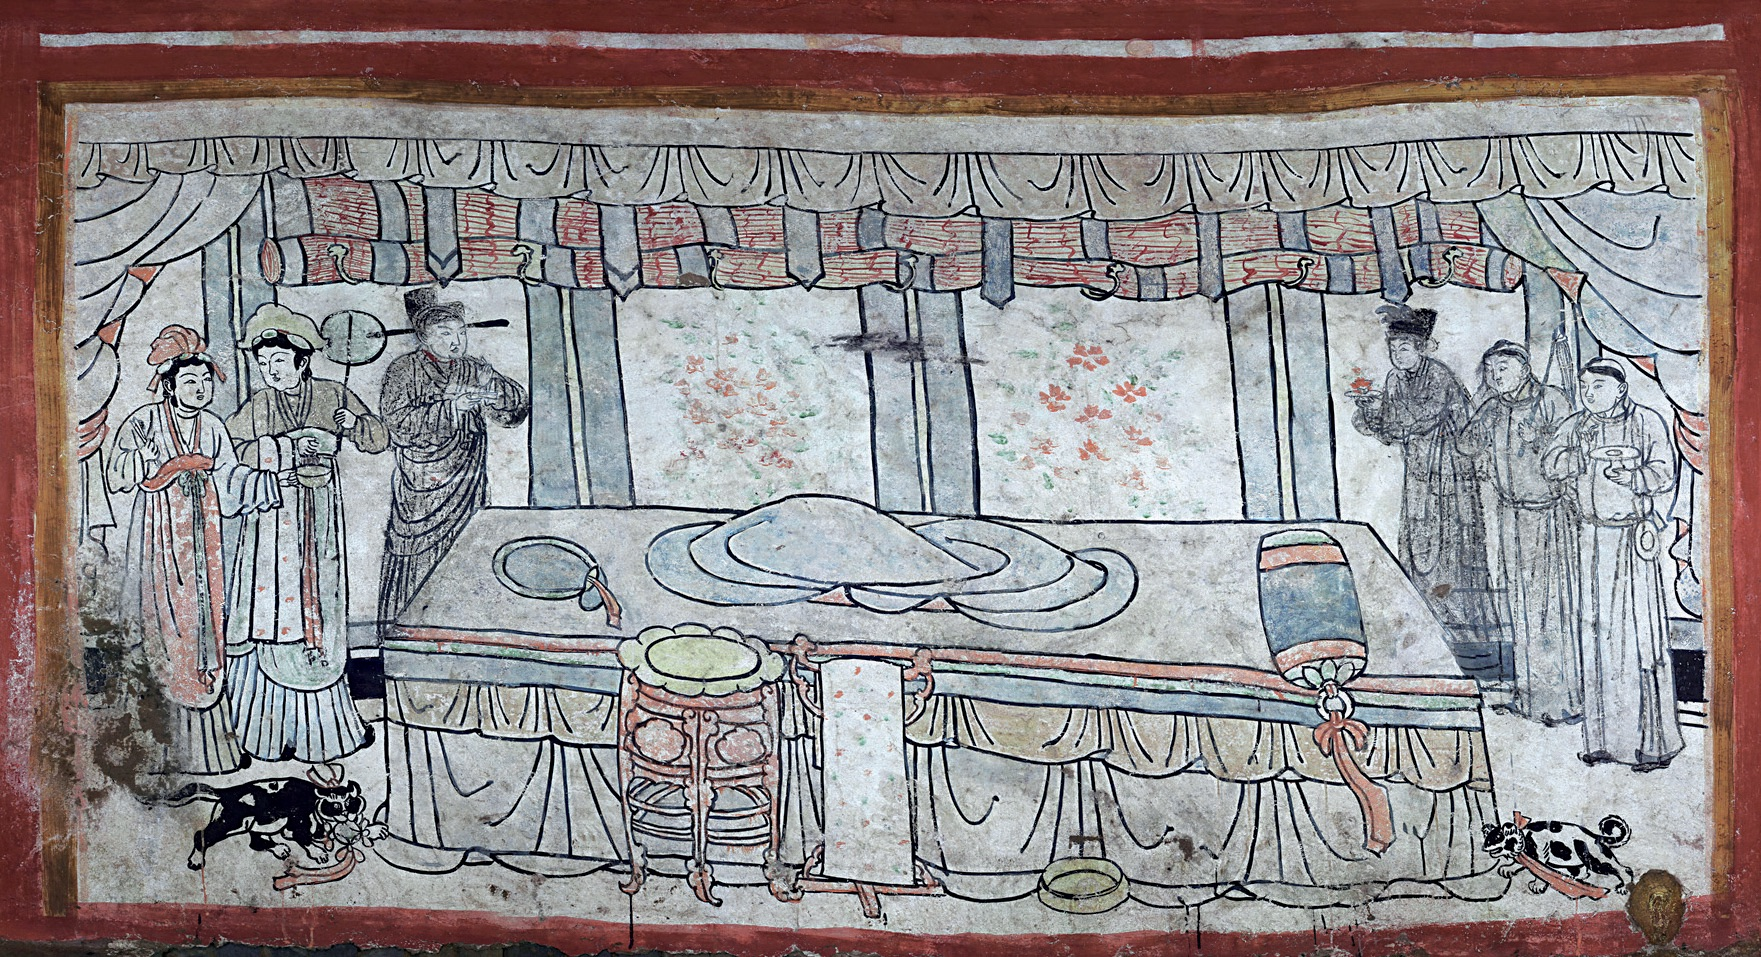 Visions Of Heaven And Earth In An Ancient Chinese Tomb